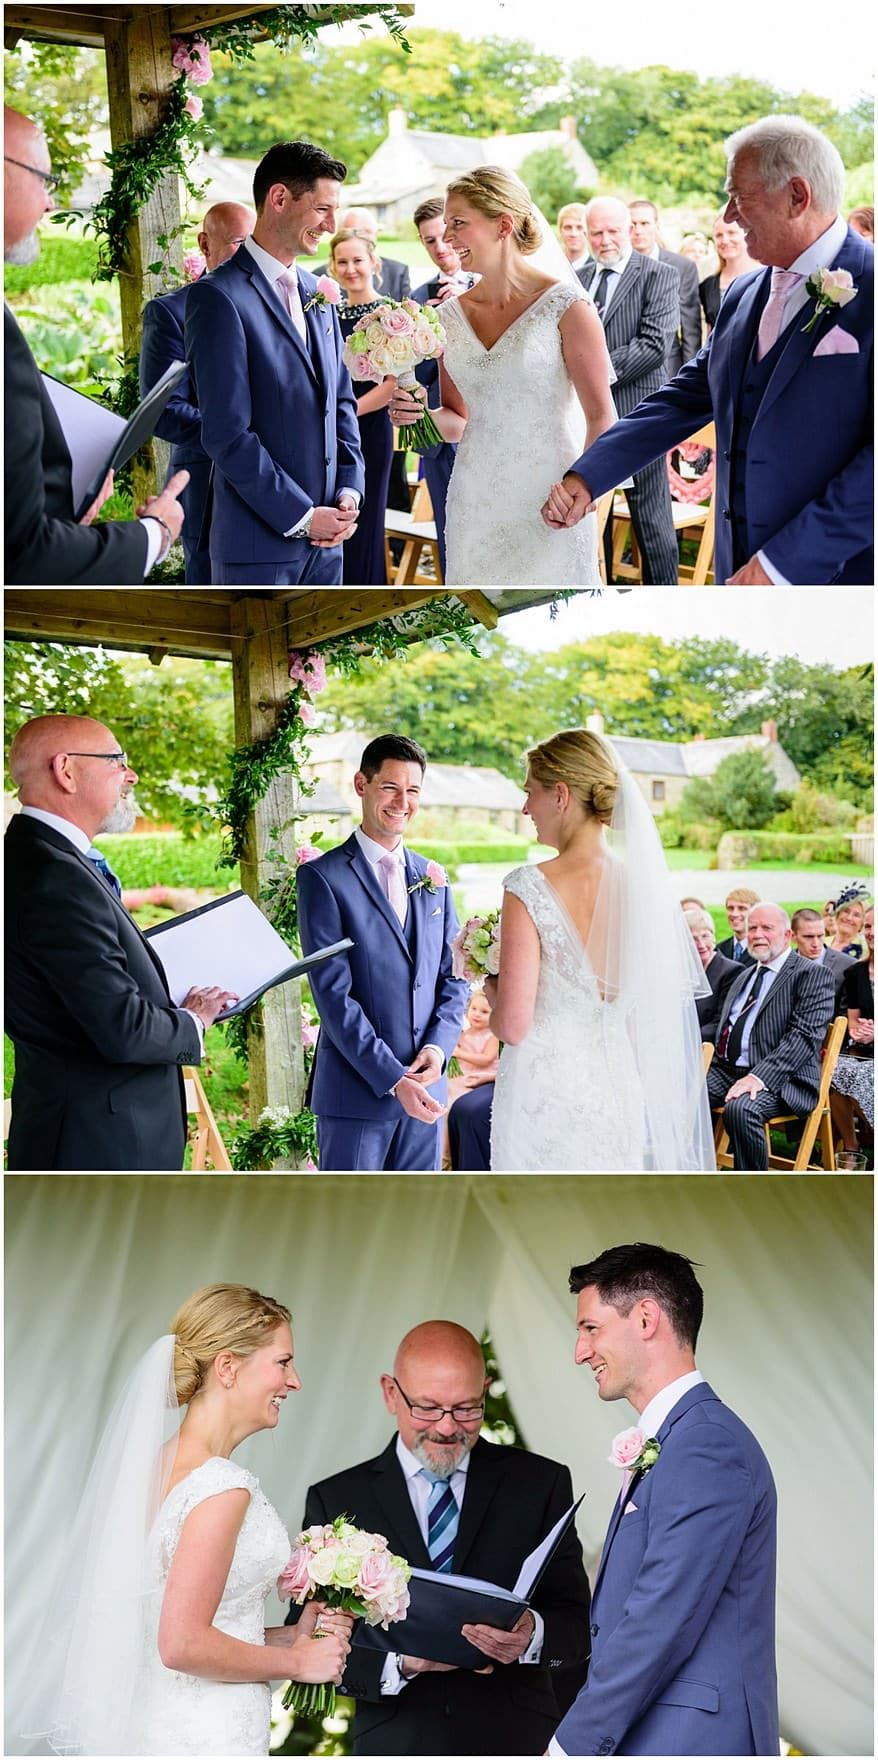 wedding ceremony at Trevenna barns